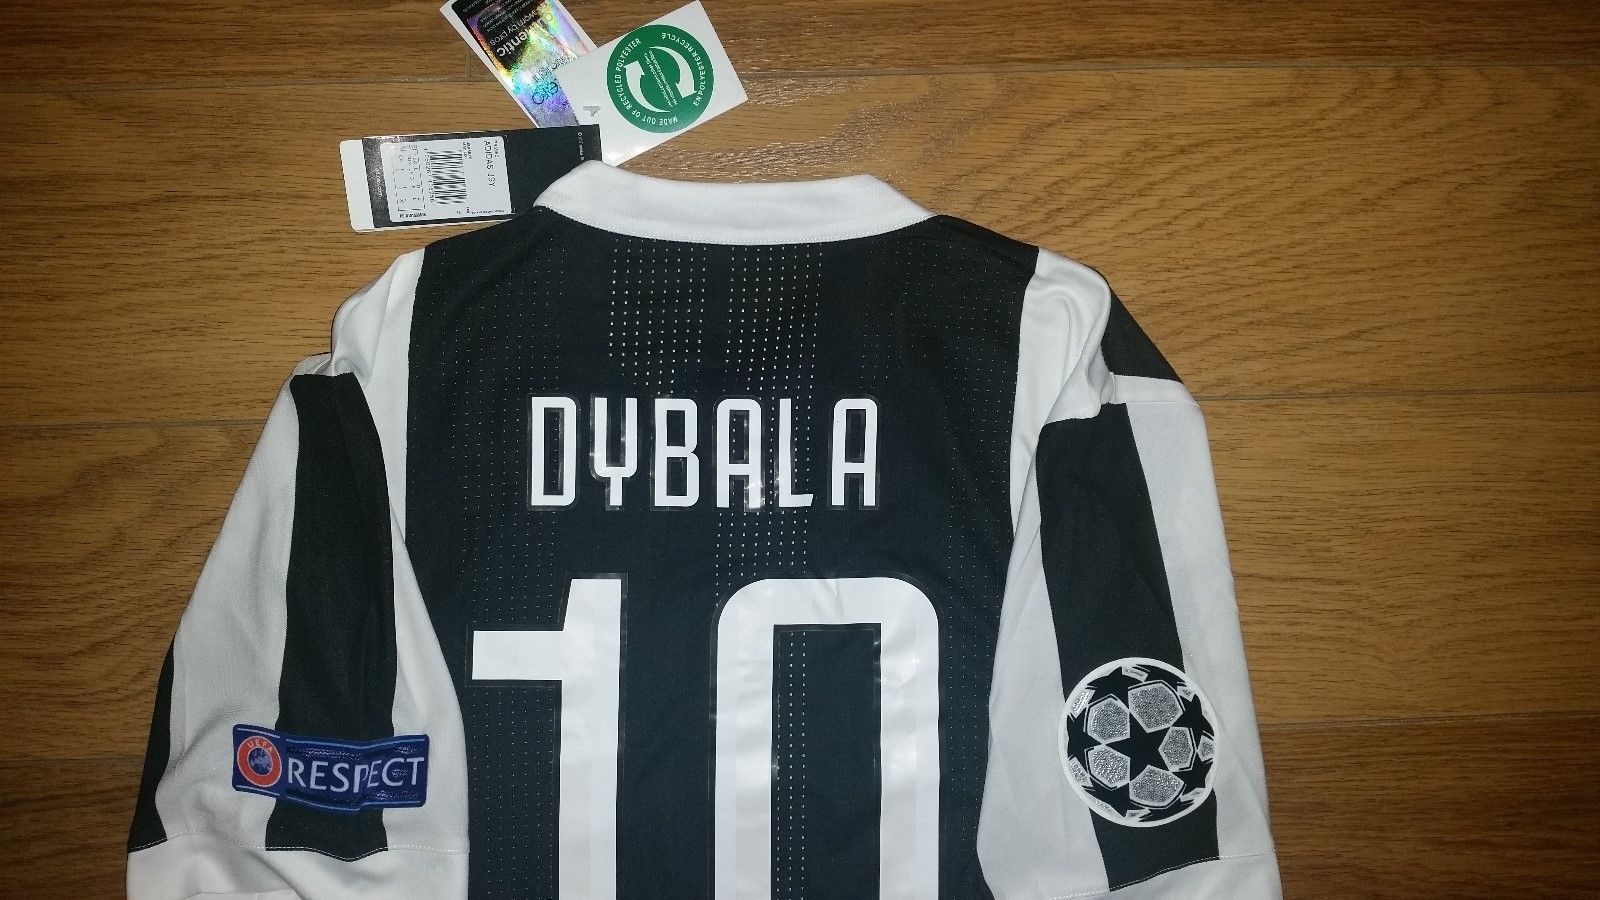 Paulo Dybala Juventus Home Jersey Champions League 17 18 Player Version  Size L b7c5ee39c